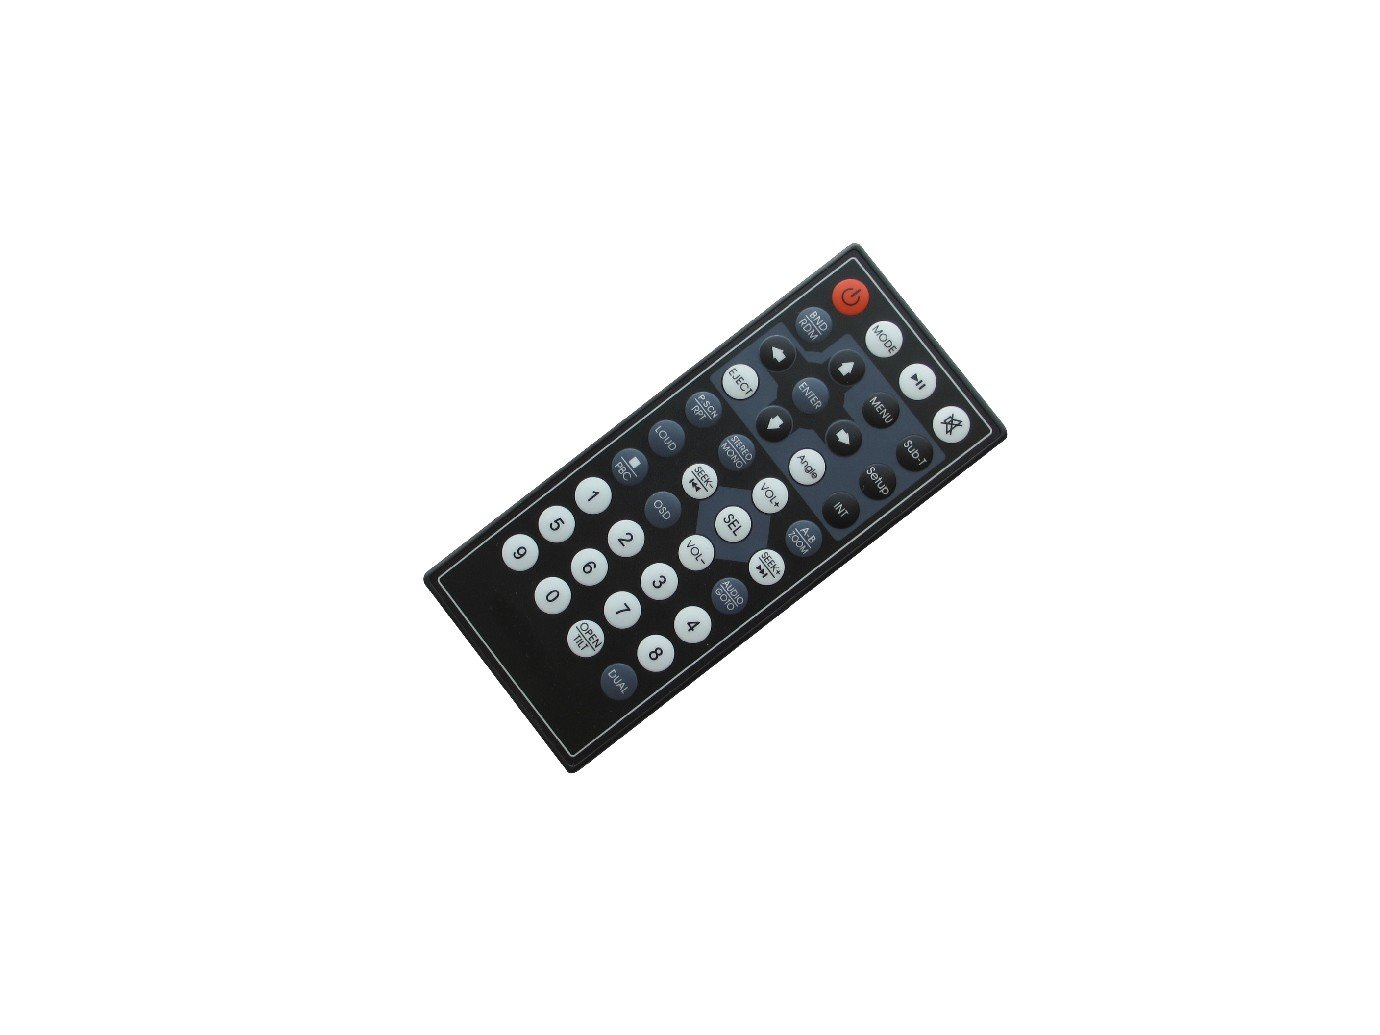 Hotsmtbang Replacement Remote Control For Power Acoustik PD-701B PD-710BT PD-342 PD-344 PD-344T DVD CD USB TV FM MP3 Player Bluetooth Car Stereo Receiver